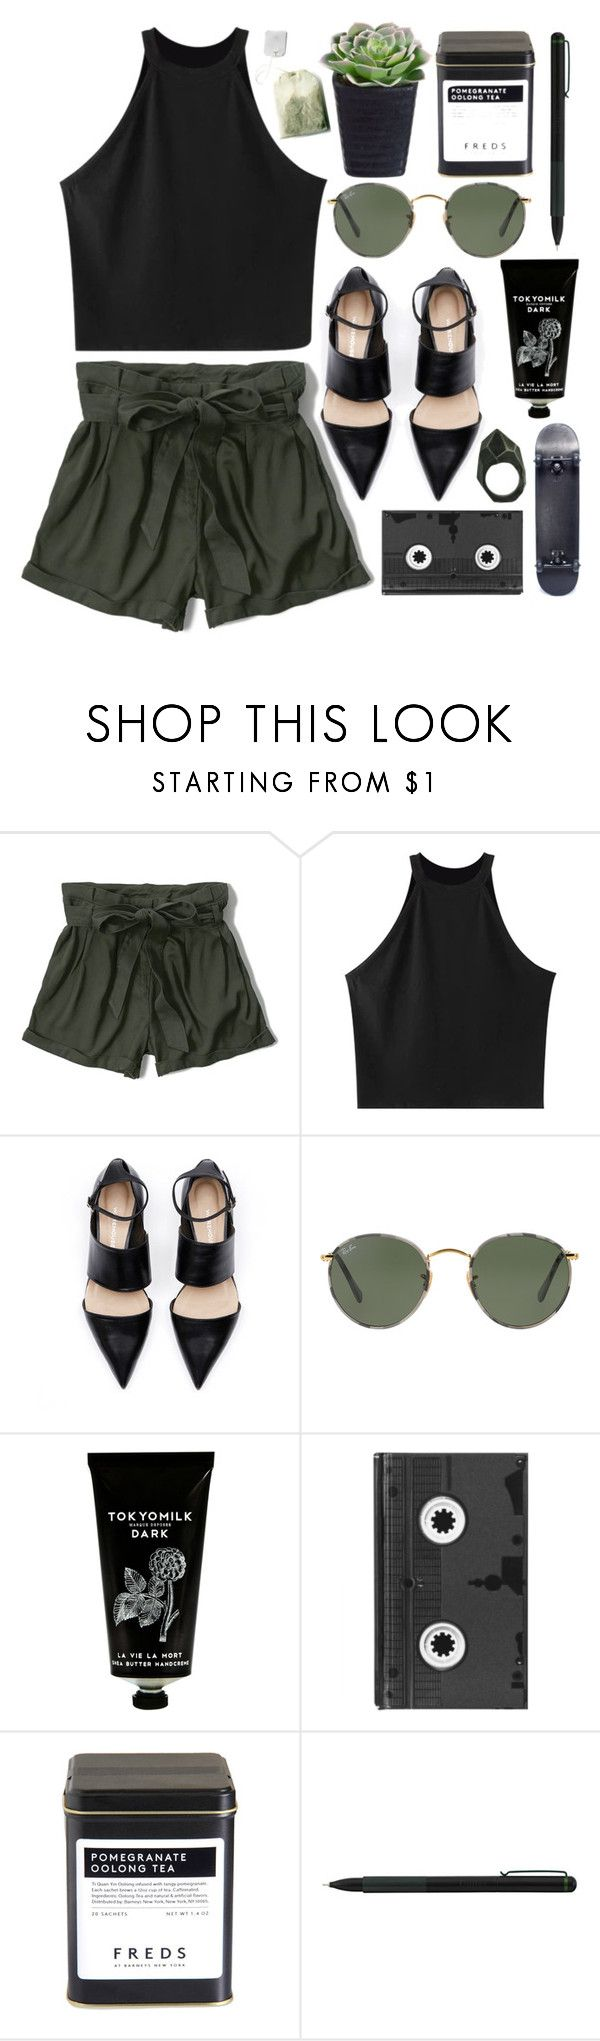 """Black and green things"" by rheeee ❤ liked on Polyvore featuring Abercrombie & Fitch, Chicnova Fashion, Ray-Ban, TokyoMilk, Luckies, FREDS at Barneys New York, IDEA International and Lady Grey"